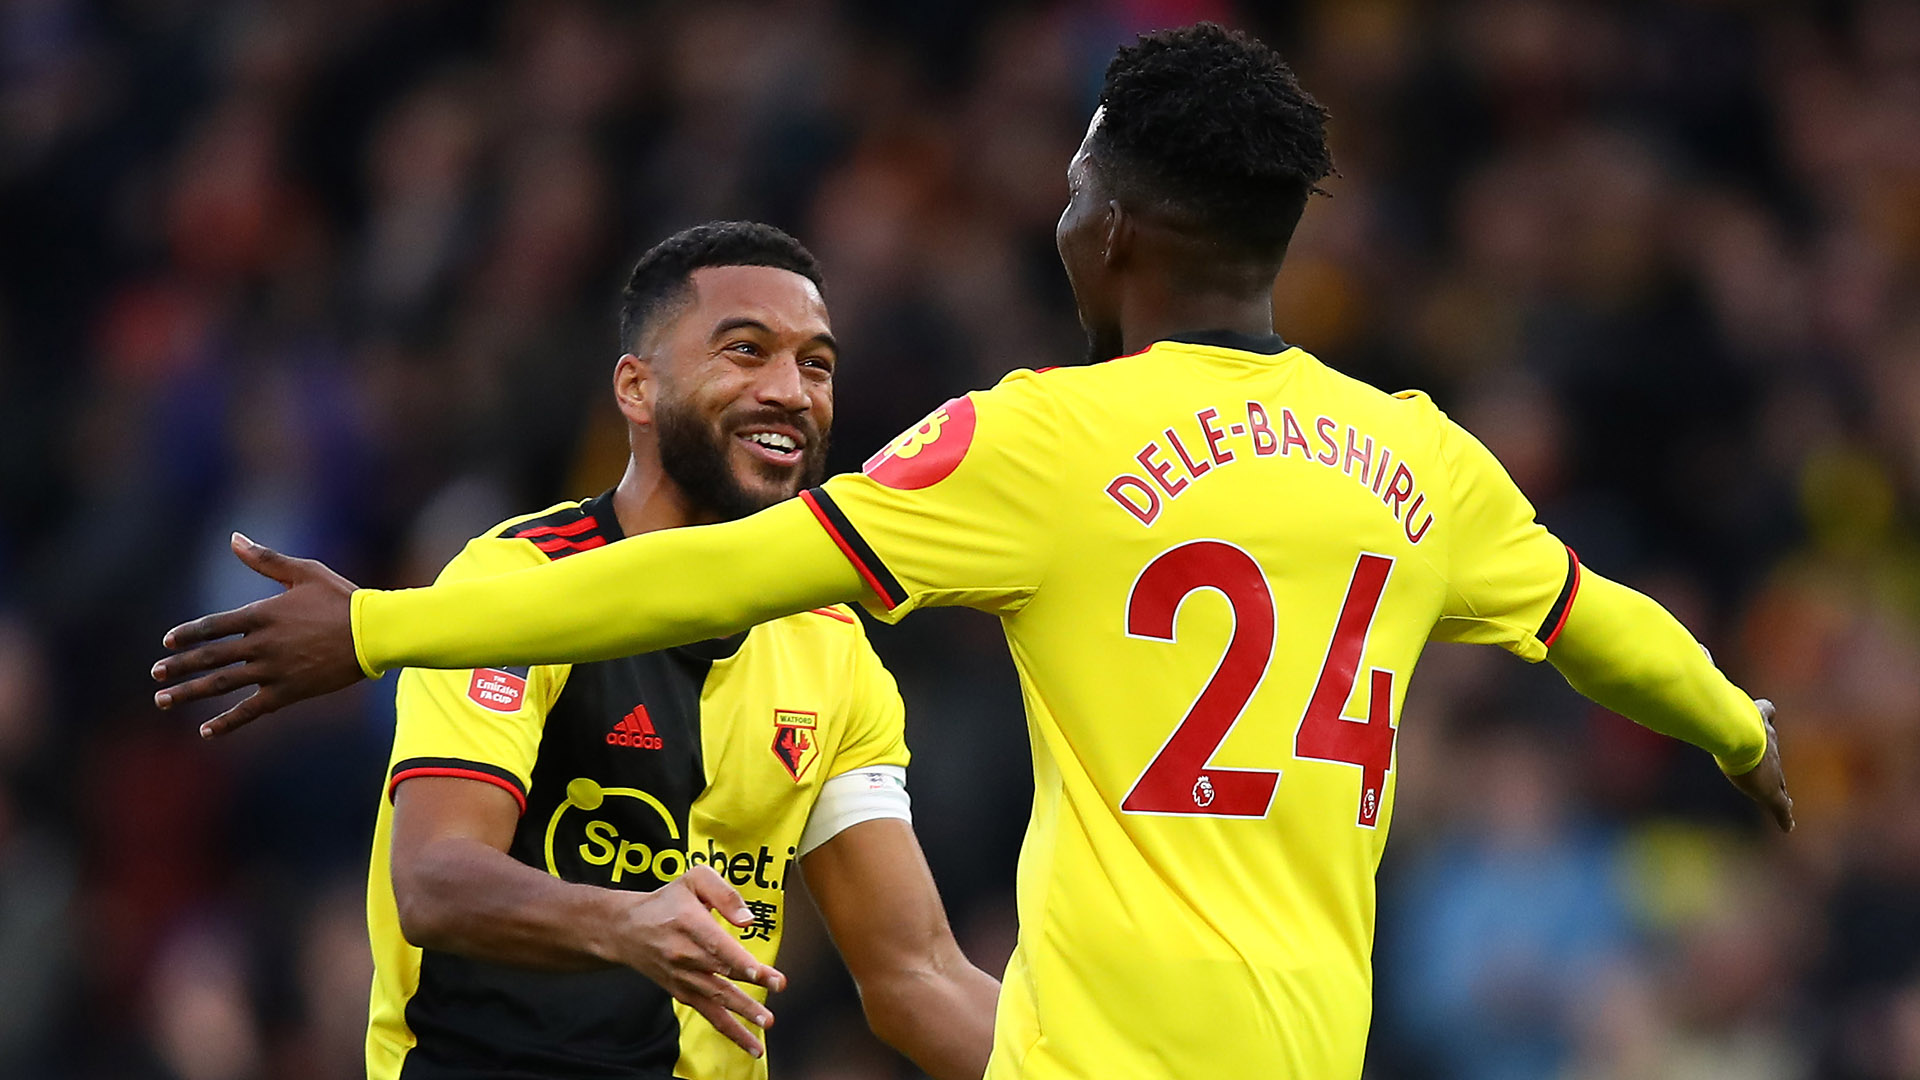 Class Dele Bashiru scores in first Watford start